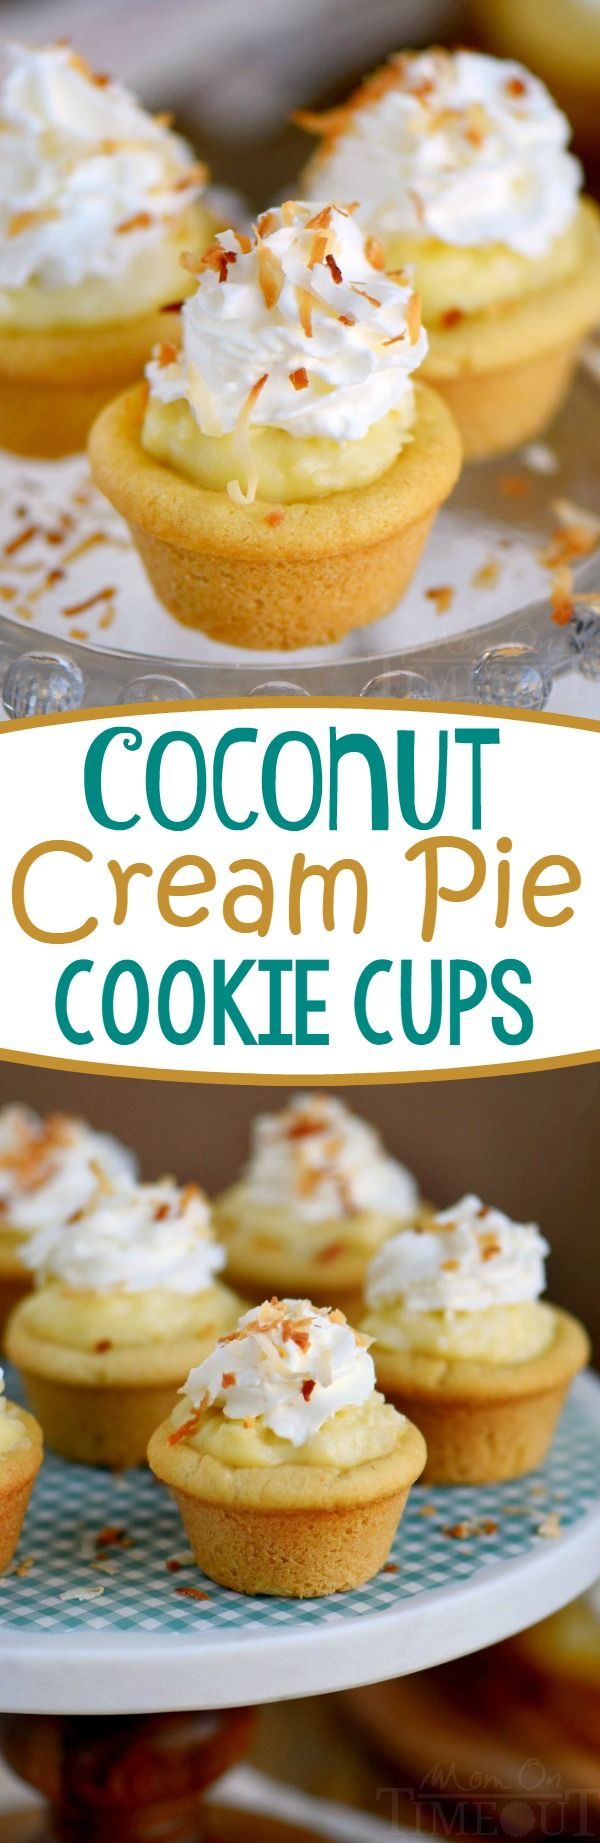 Coconut Cream Pie Cookie Cups Two Of My Favorite Desserts